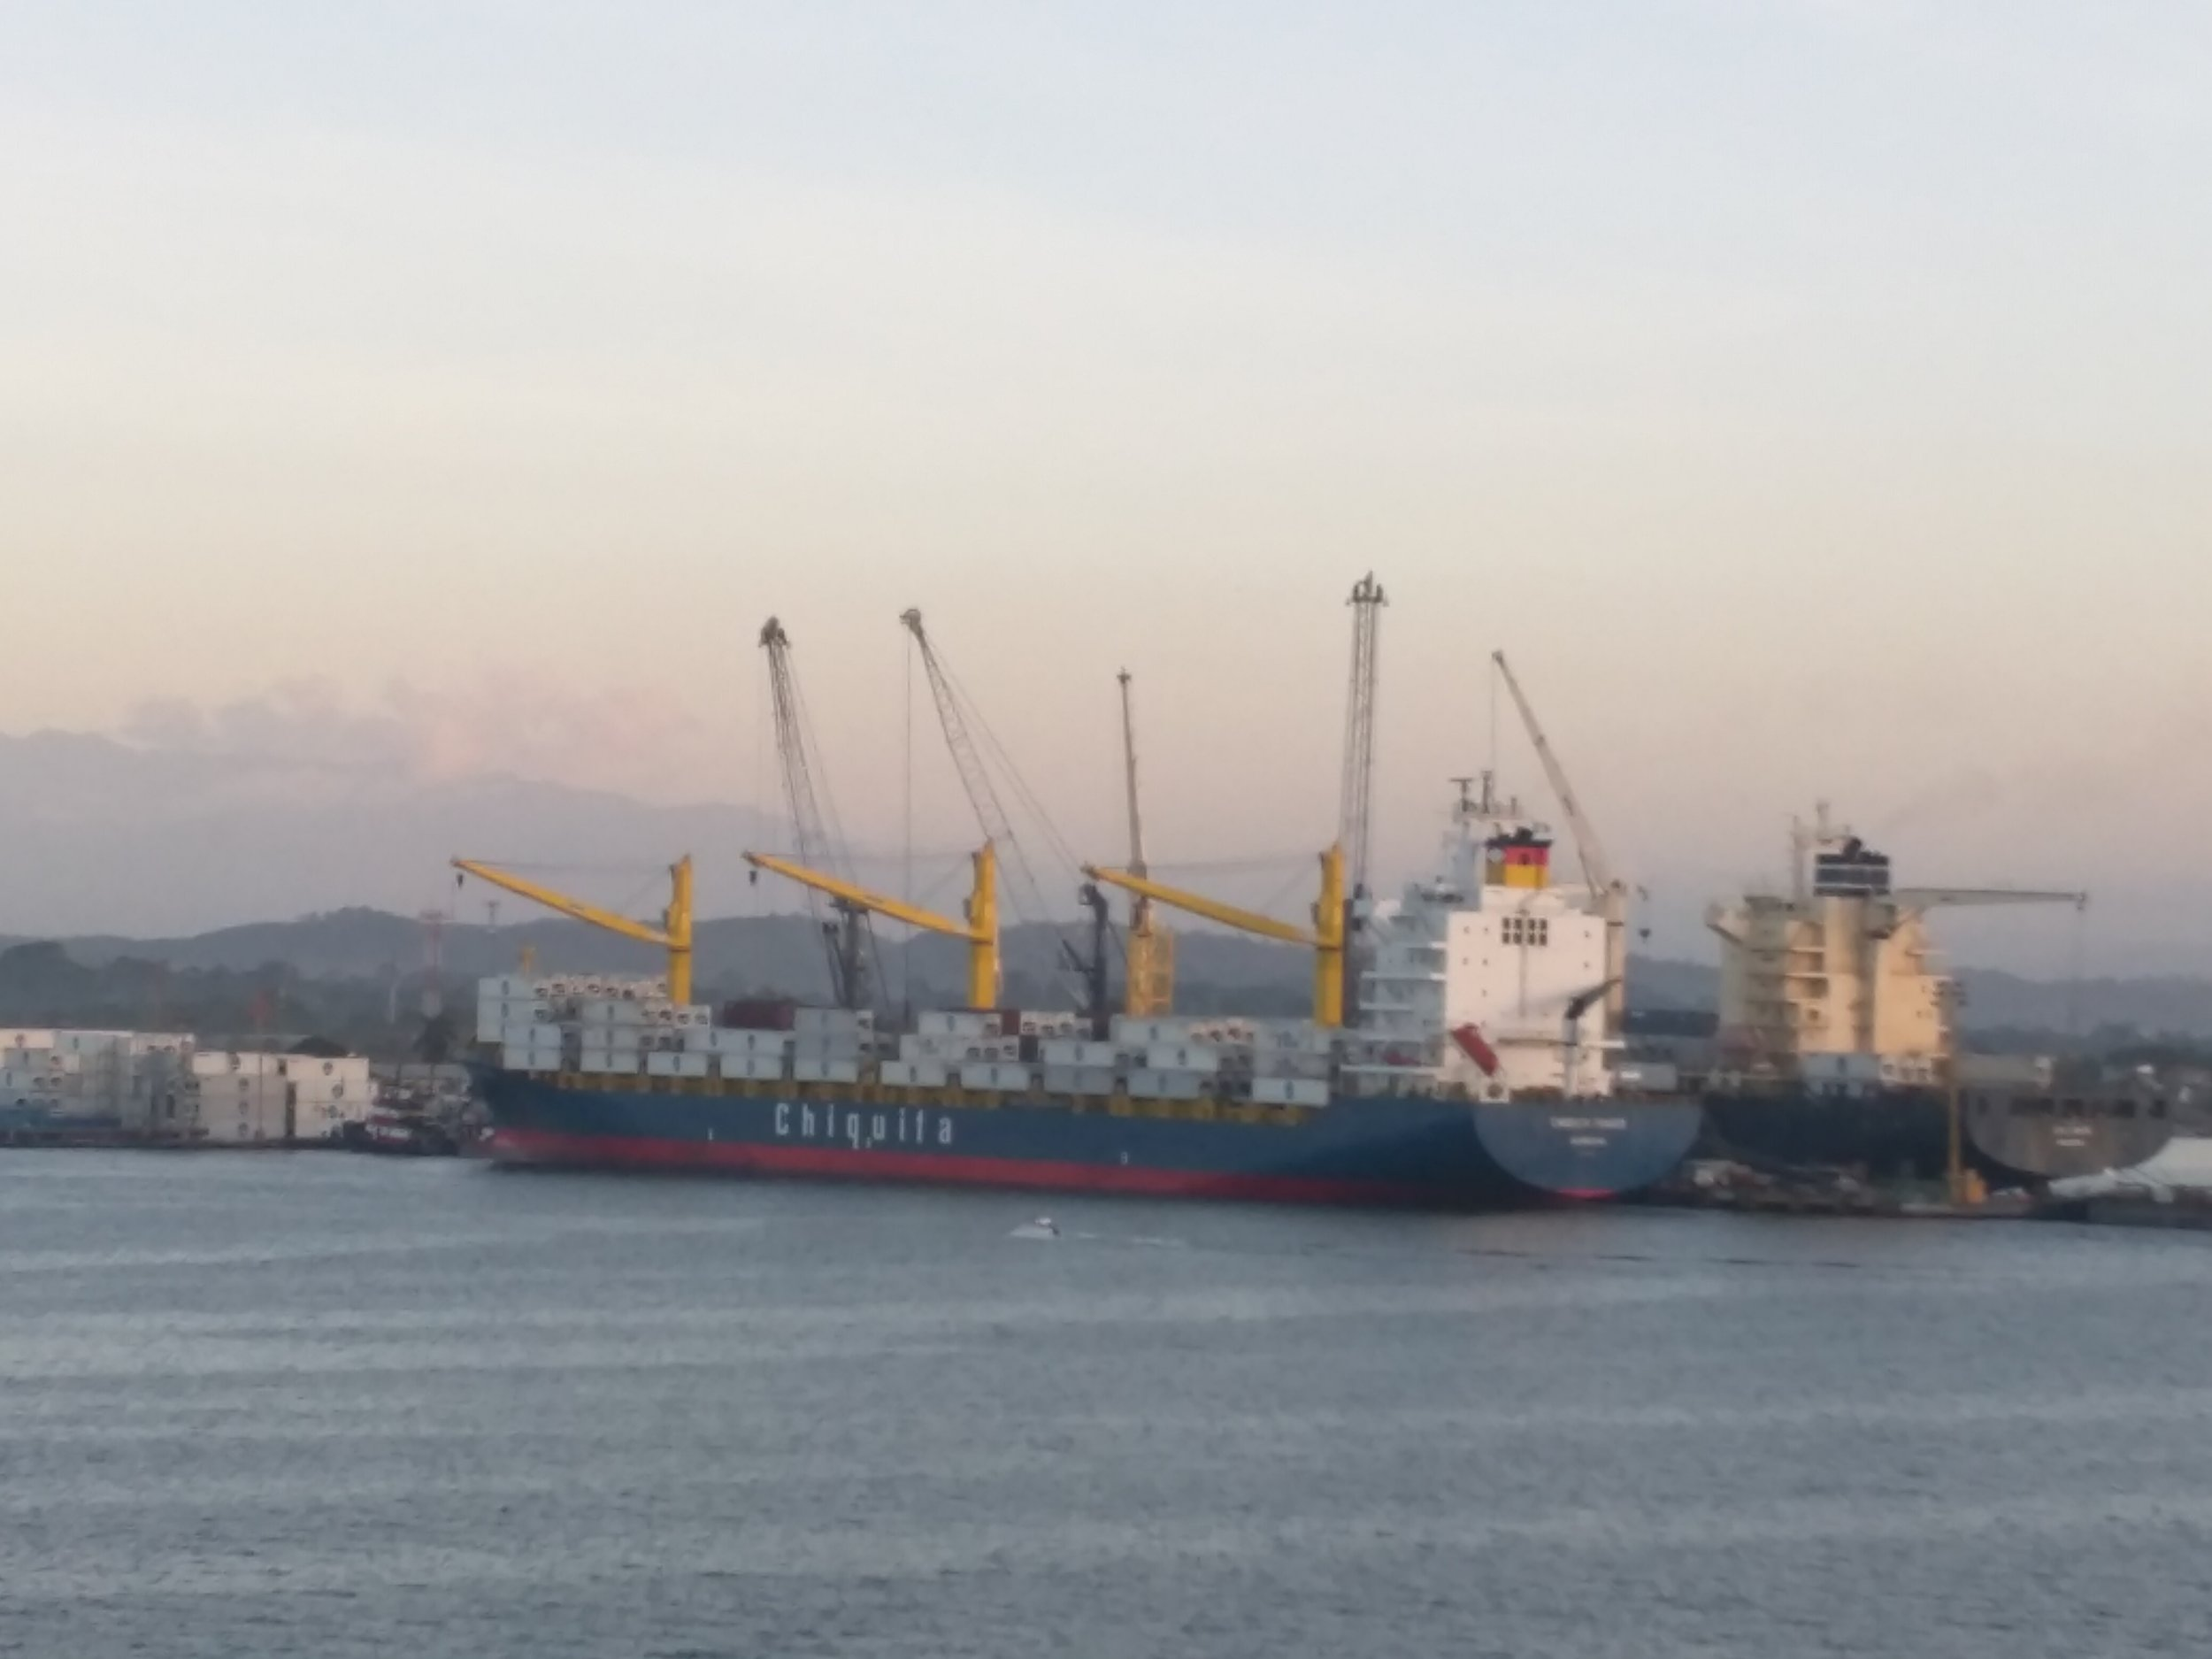 Guatemala: Containers and Cargo Ships